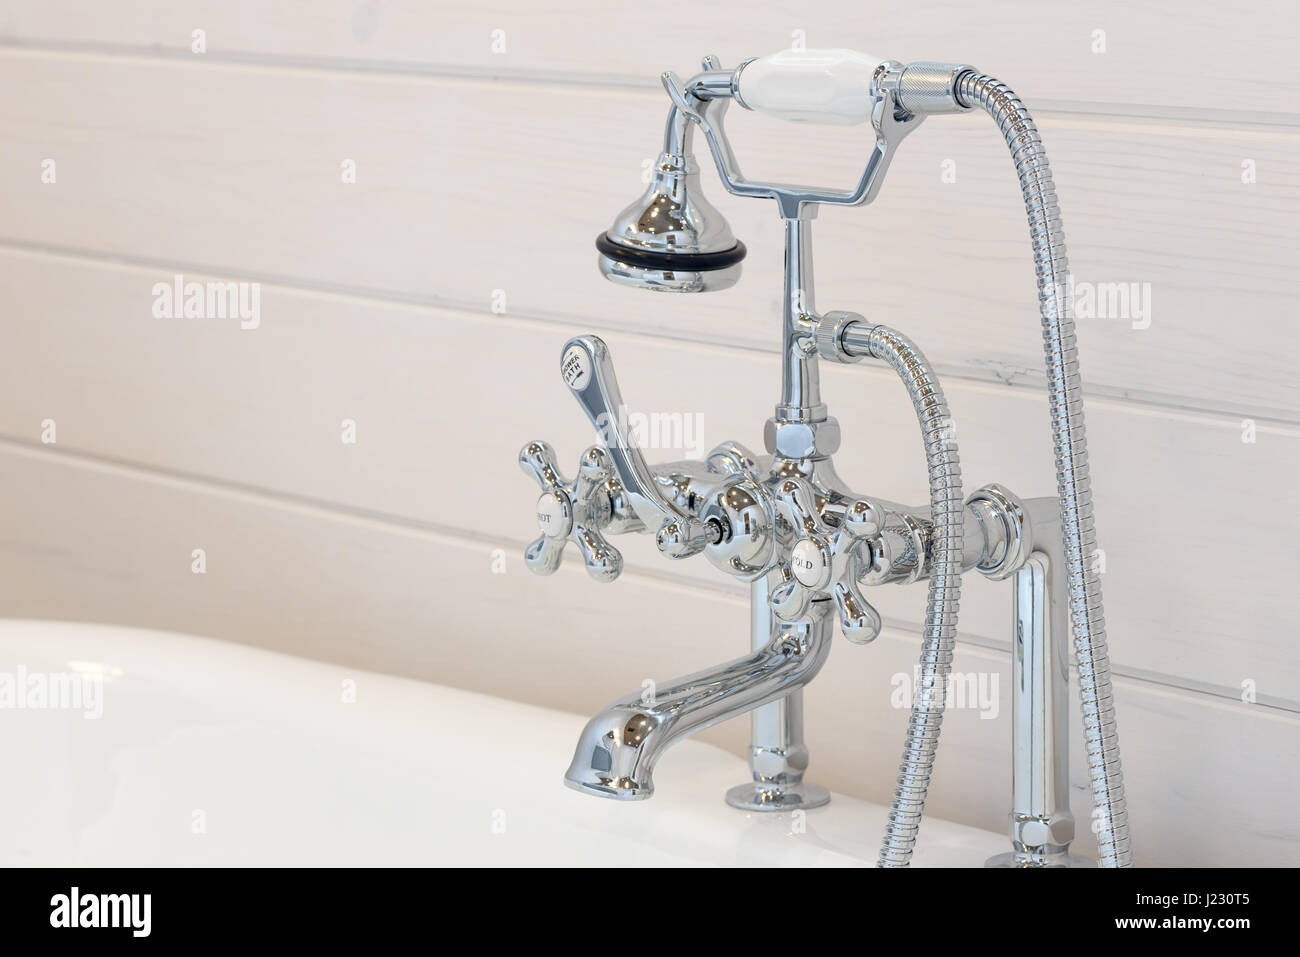 Vintage bathtub faucet and shower head Stock Photo: 138978789 - Alamy